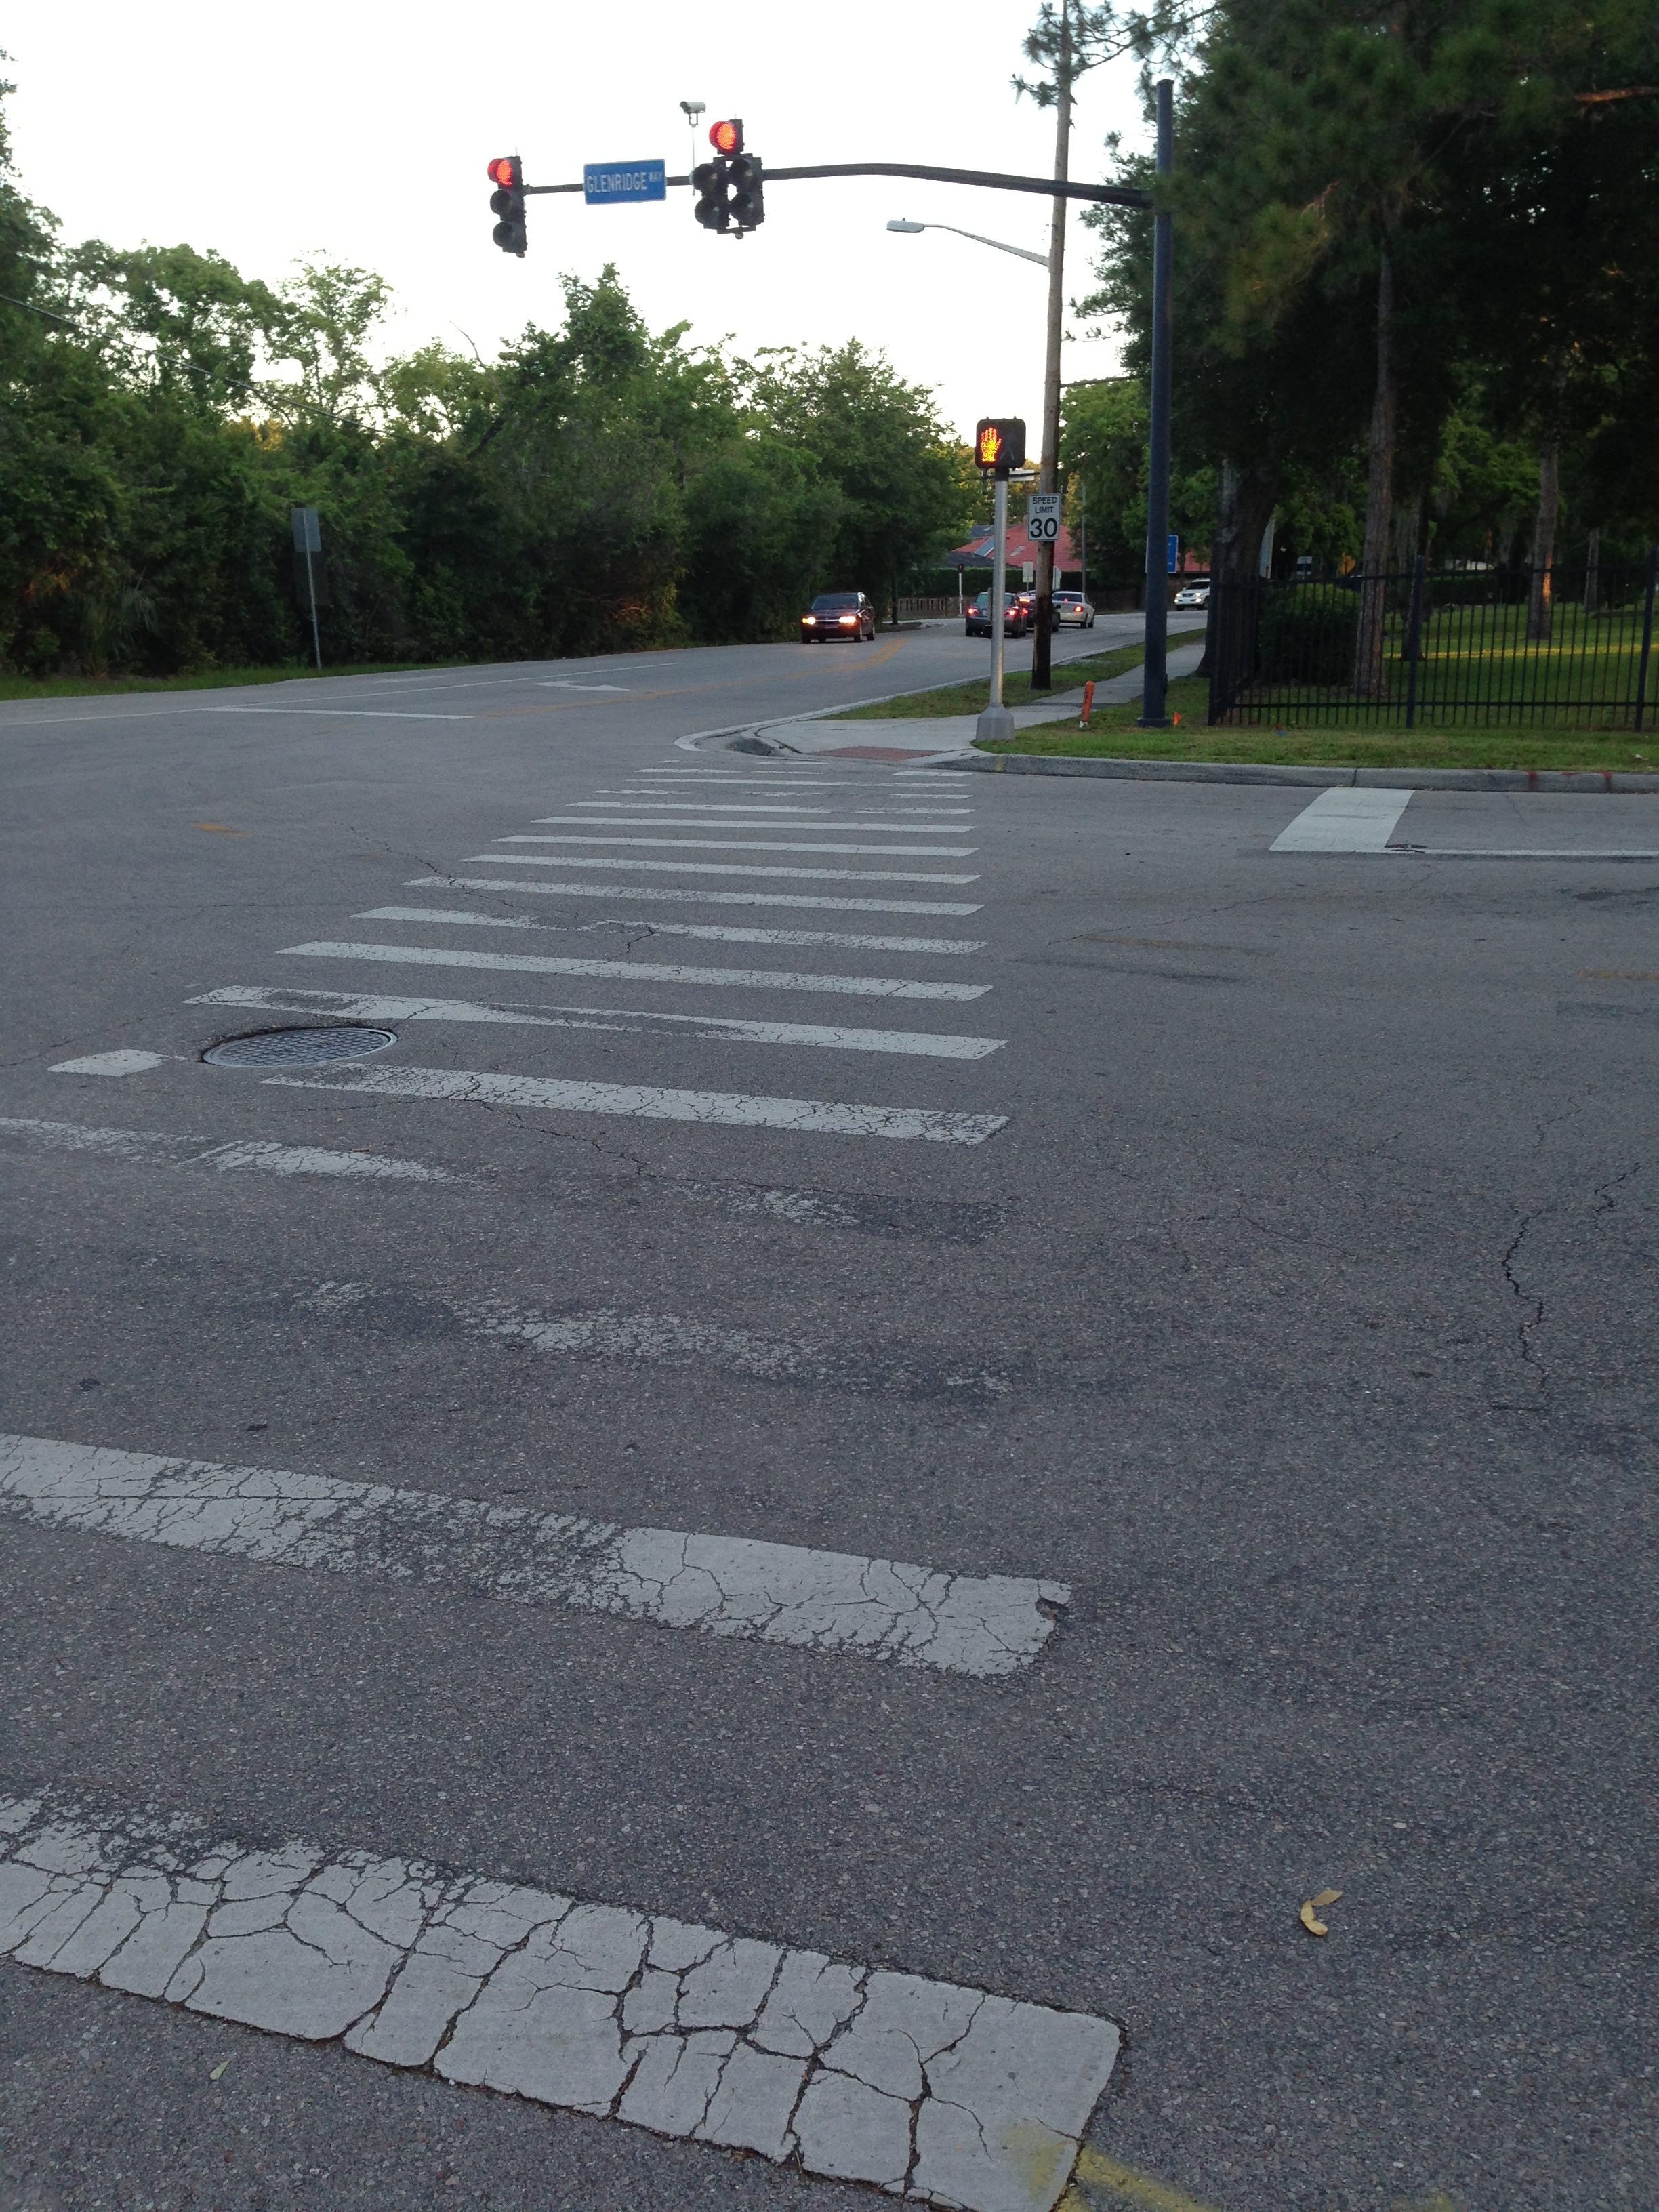 A dangerous intersection in Winter Park, FL when pedestrians do not use the signal properly.